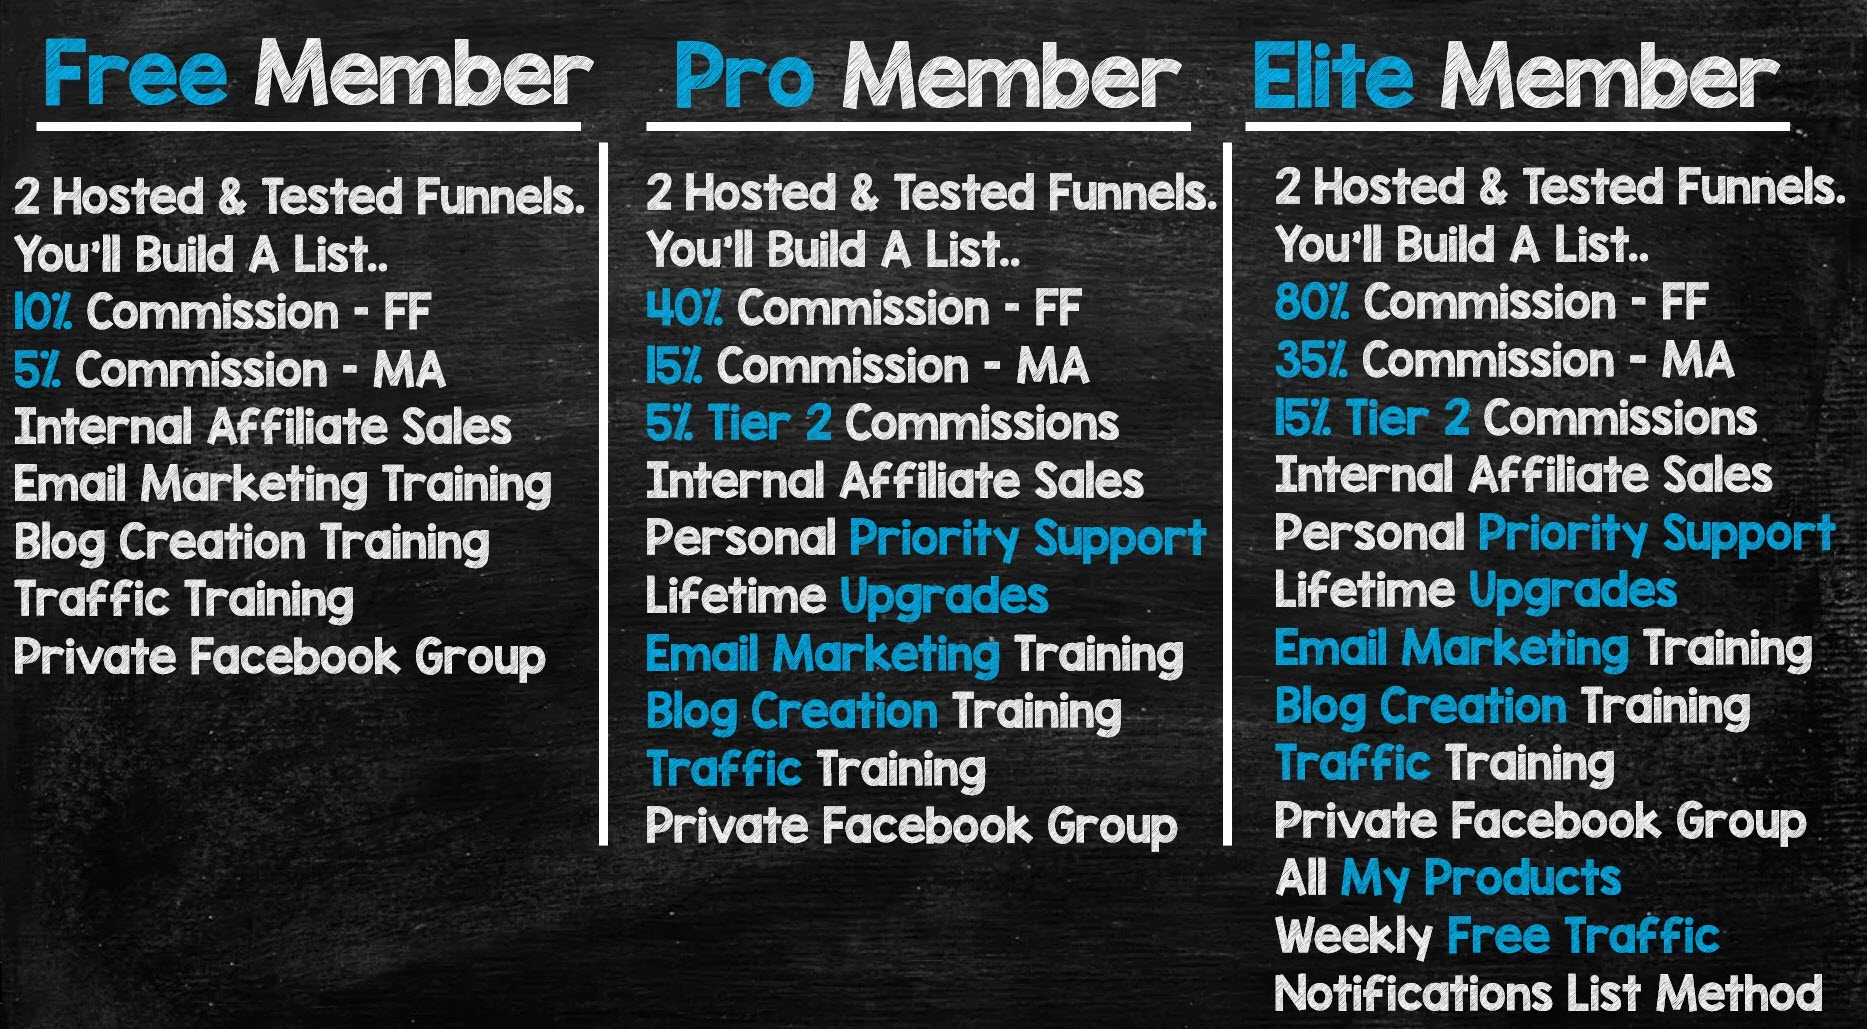 Funnel Franchise system give a lot to a free member